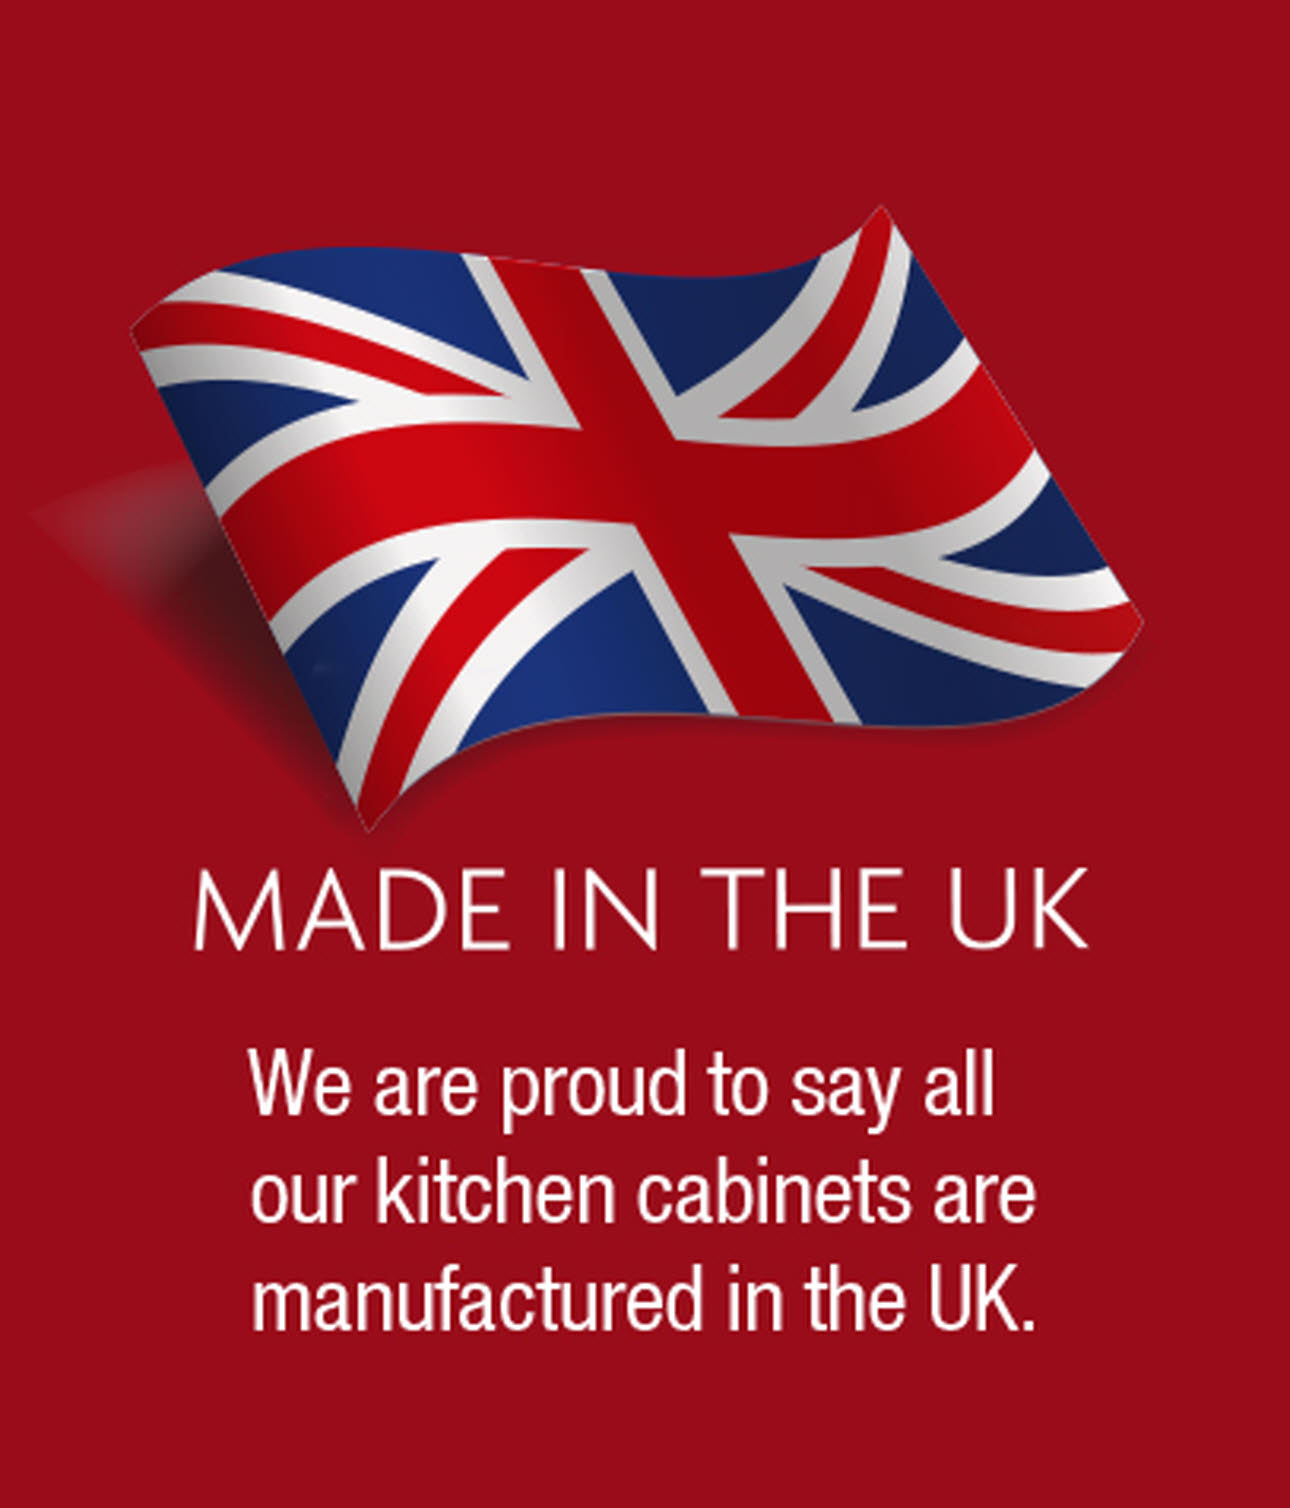 Magnet Ltd. Kitchen cabinets made in UK red logo, with union jack